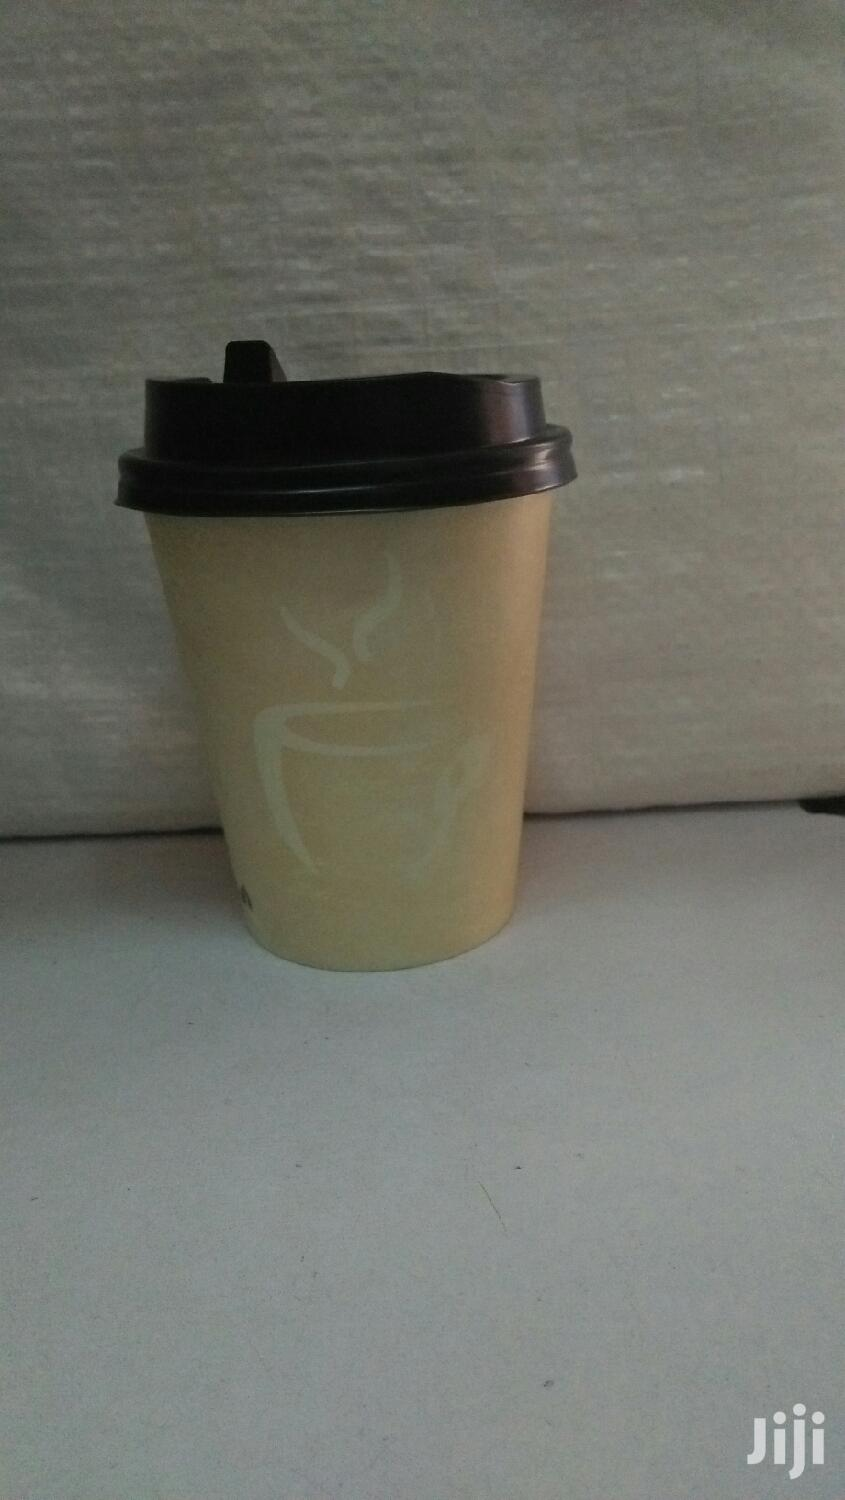 Coffee Cups   Kitchen & Dining for sale in Nairobi Central, Nairobi, Kenya